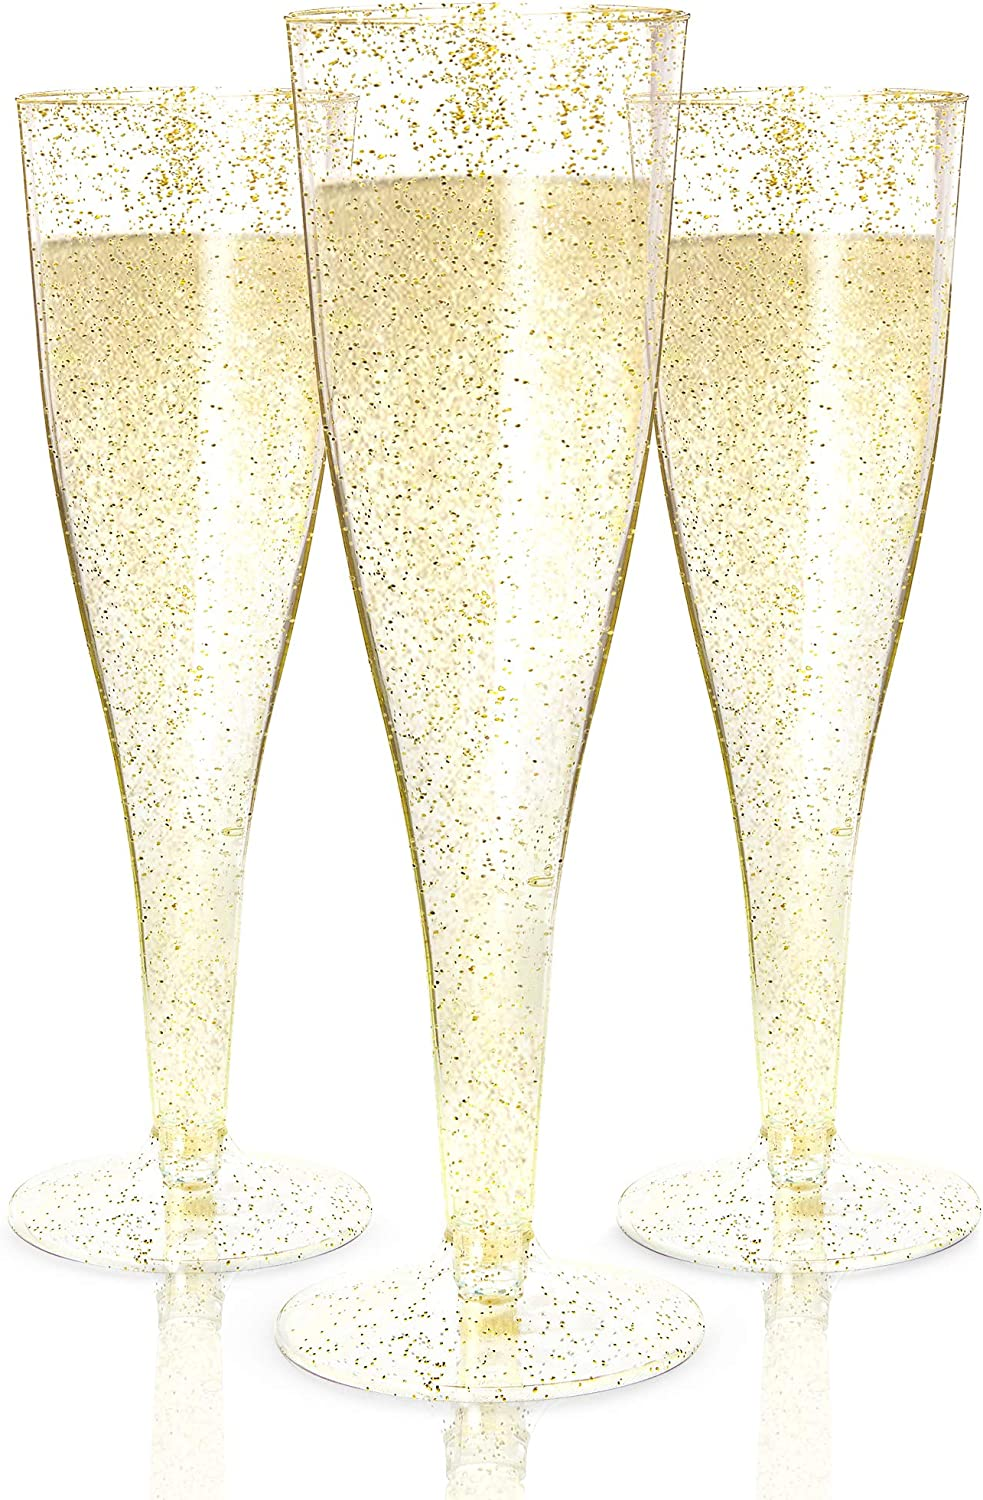 24 Plastic Champagne Flutes Disposable | Gold Glitter Plastic Champagne Glasses for Parties | Glitter Clear Plastic Cups | Plastic Toasting Glasses | Mimosa | Wedding and Shower Party Supplies